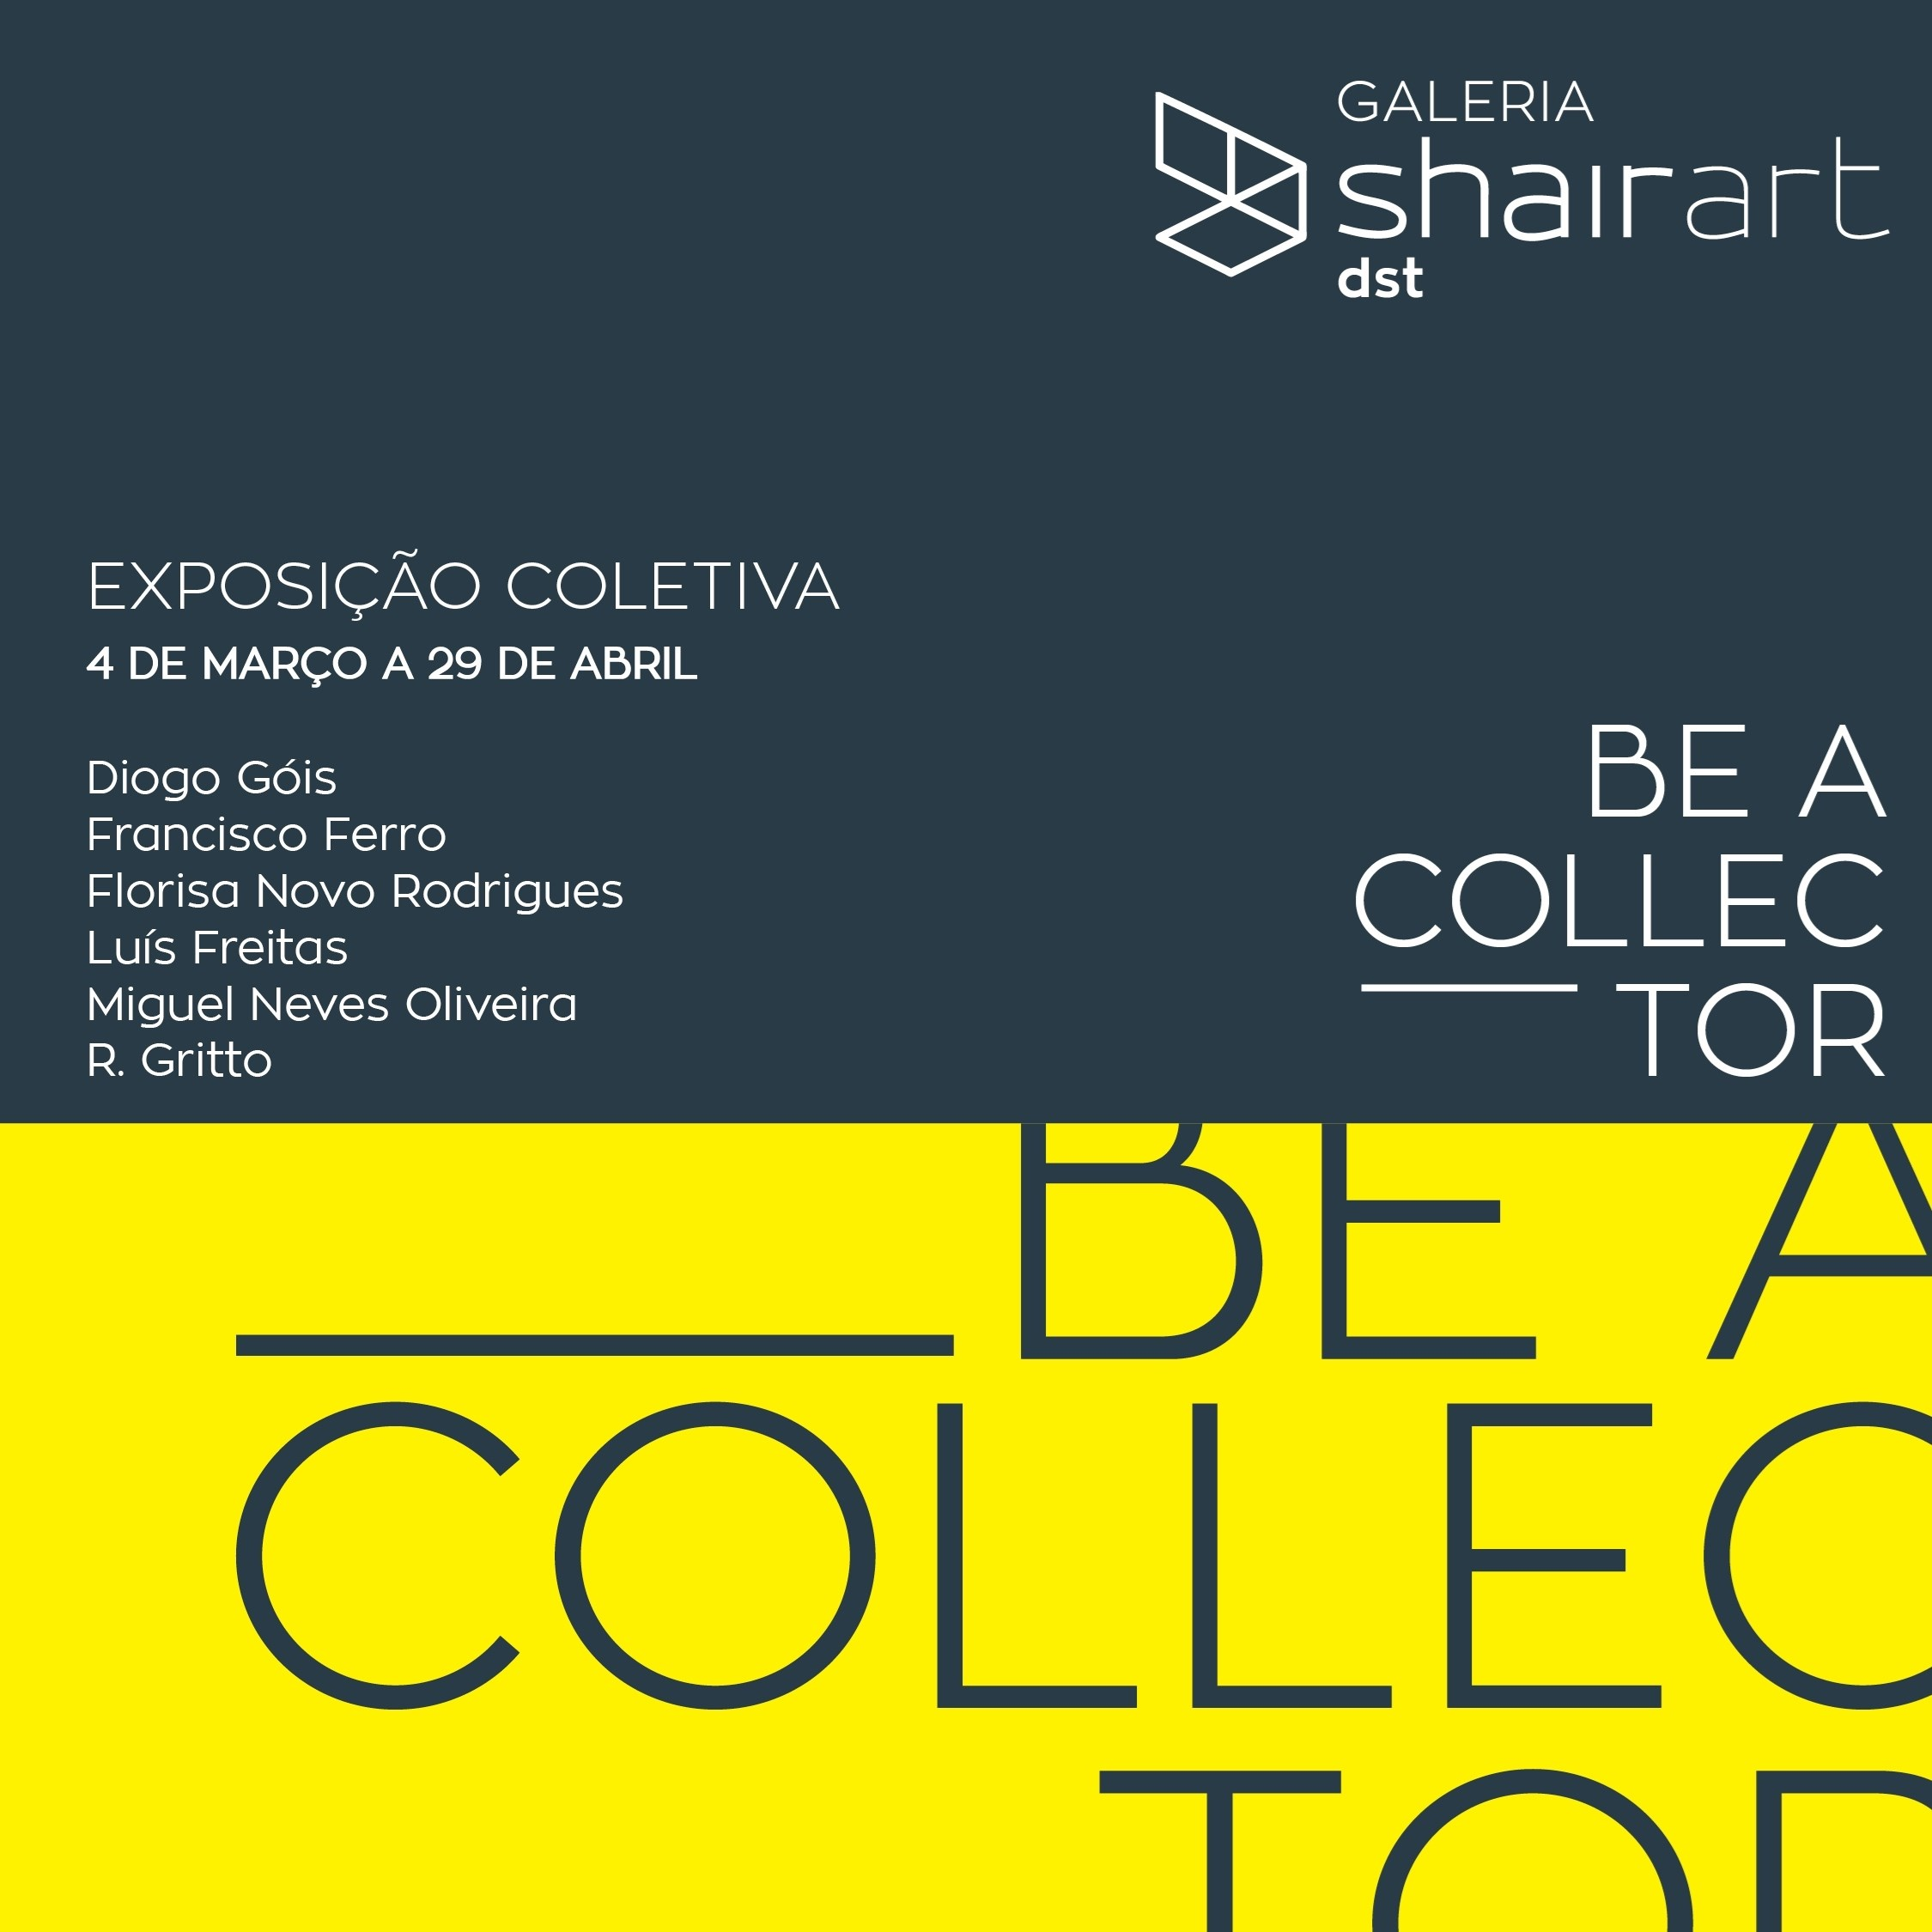 """Be a collector"" is shairart's appeal"